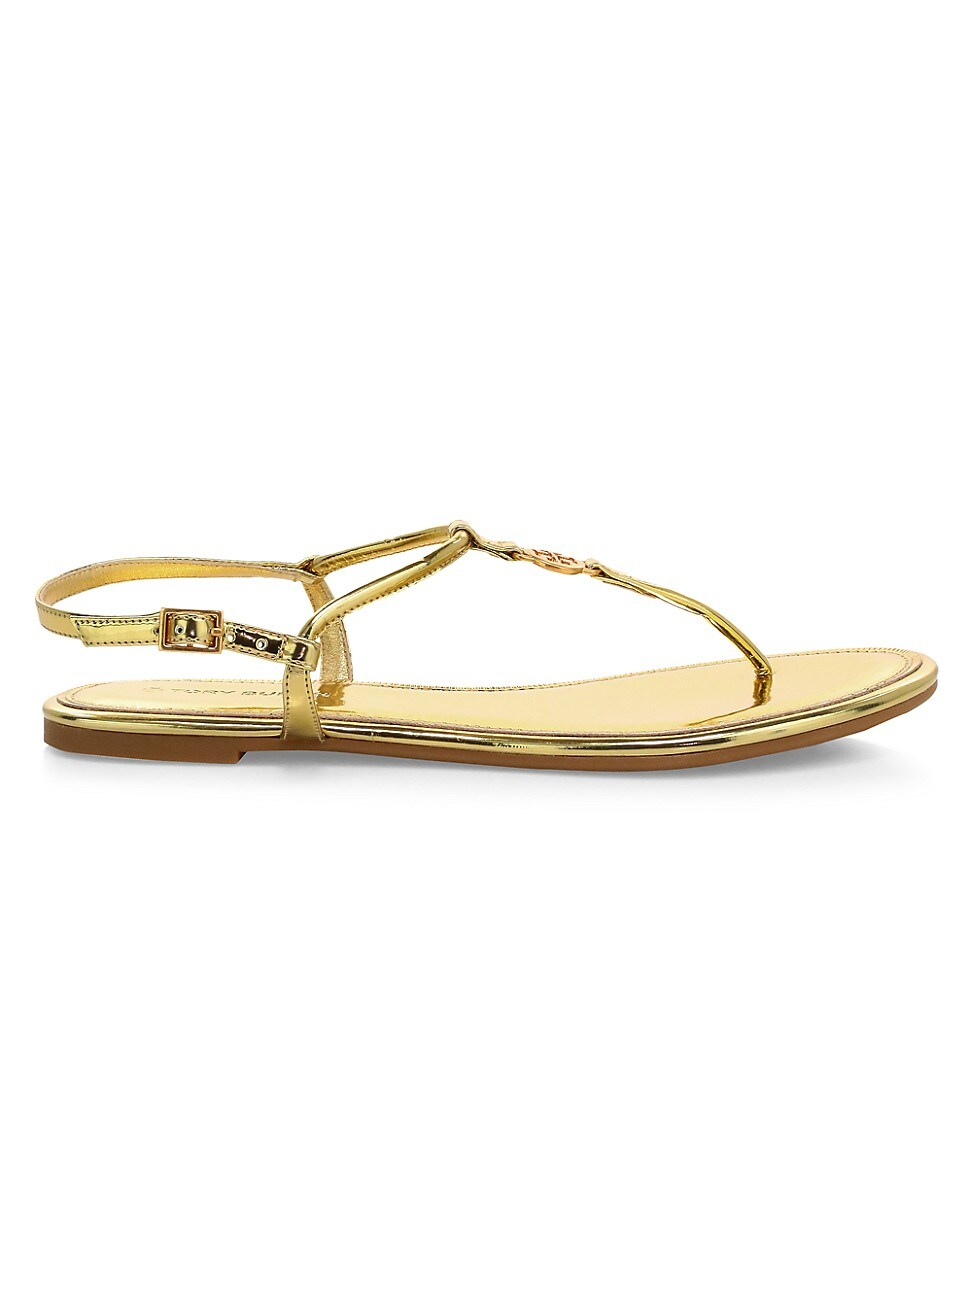 Tory Burch WOMEN'S EMMY METALLIC THONG SANDALS